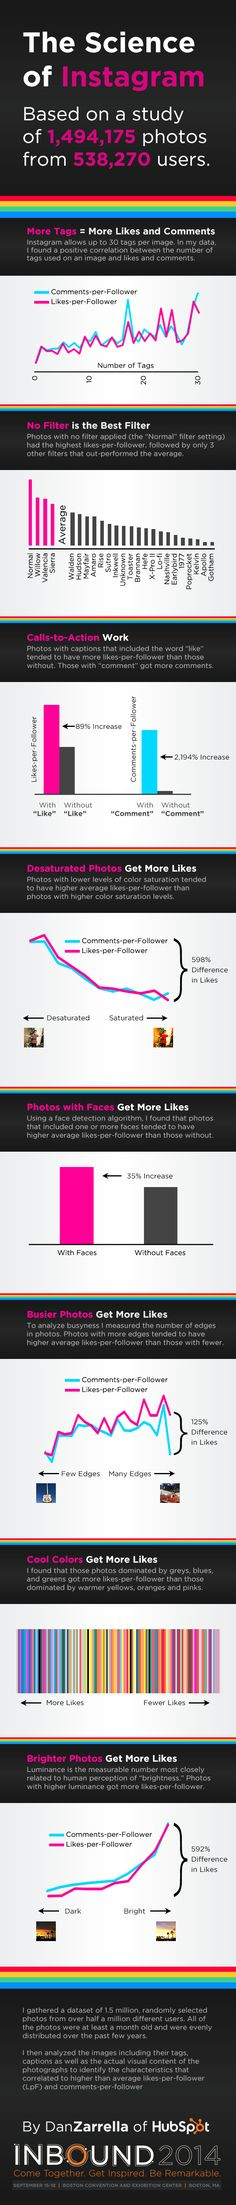 The Science of Instagram: How to Get More Likes and Followers